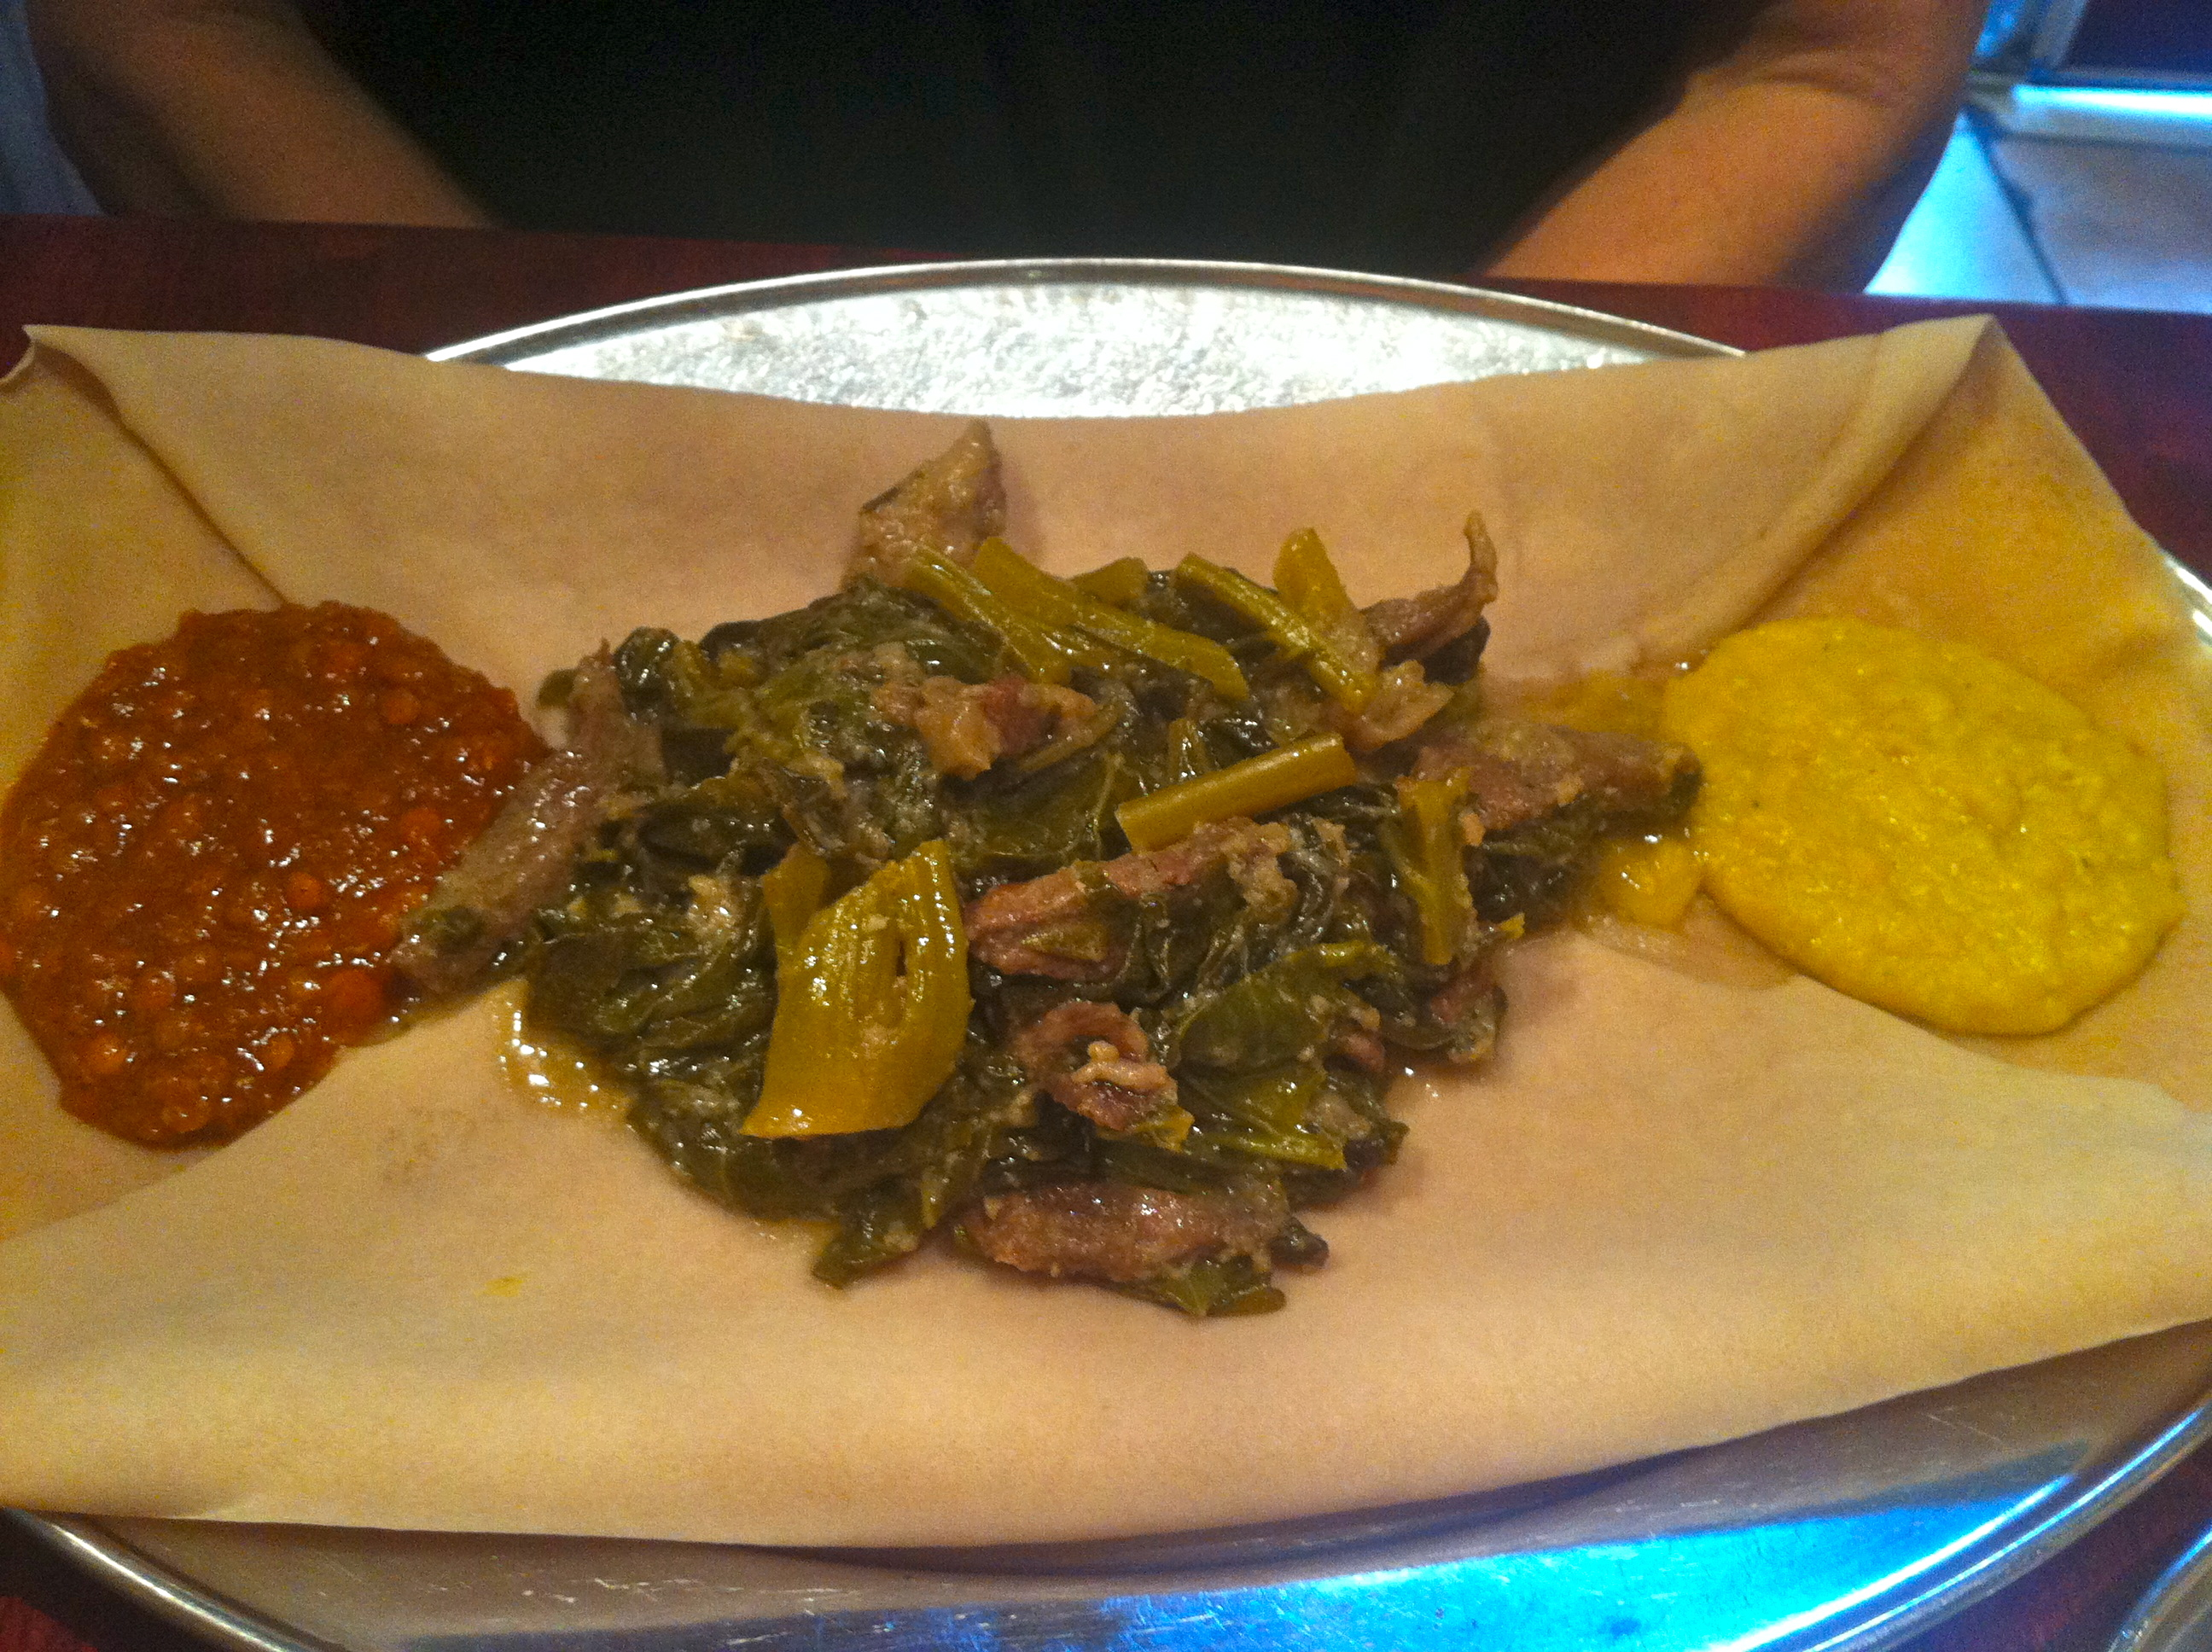 Ethiopian food - one of my favourites - prebiotic rich meal!